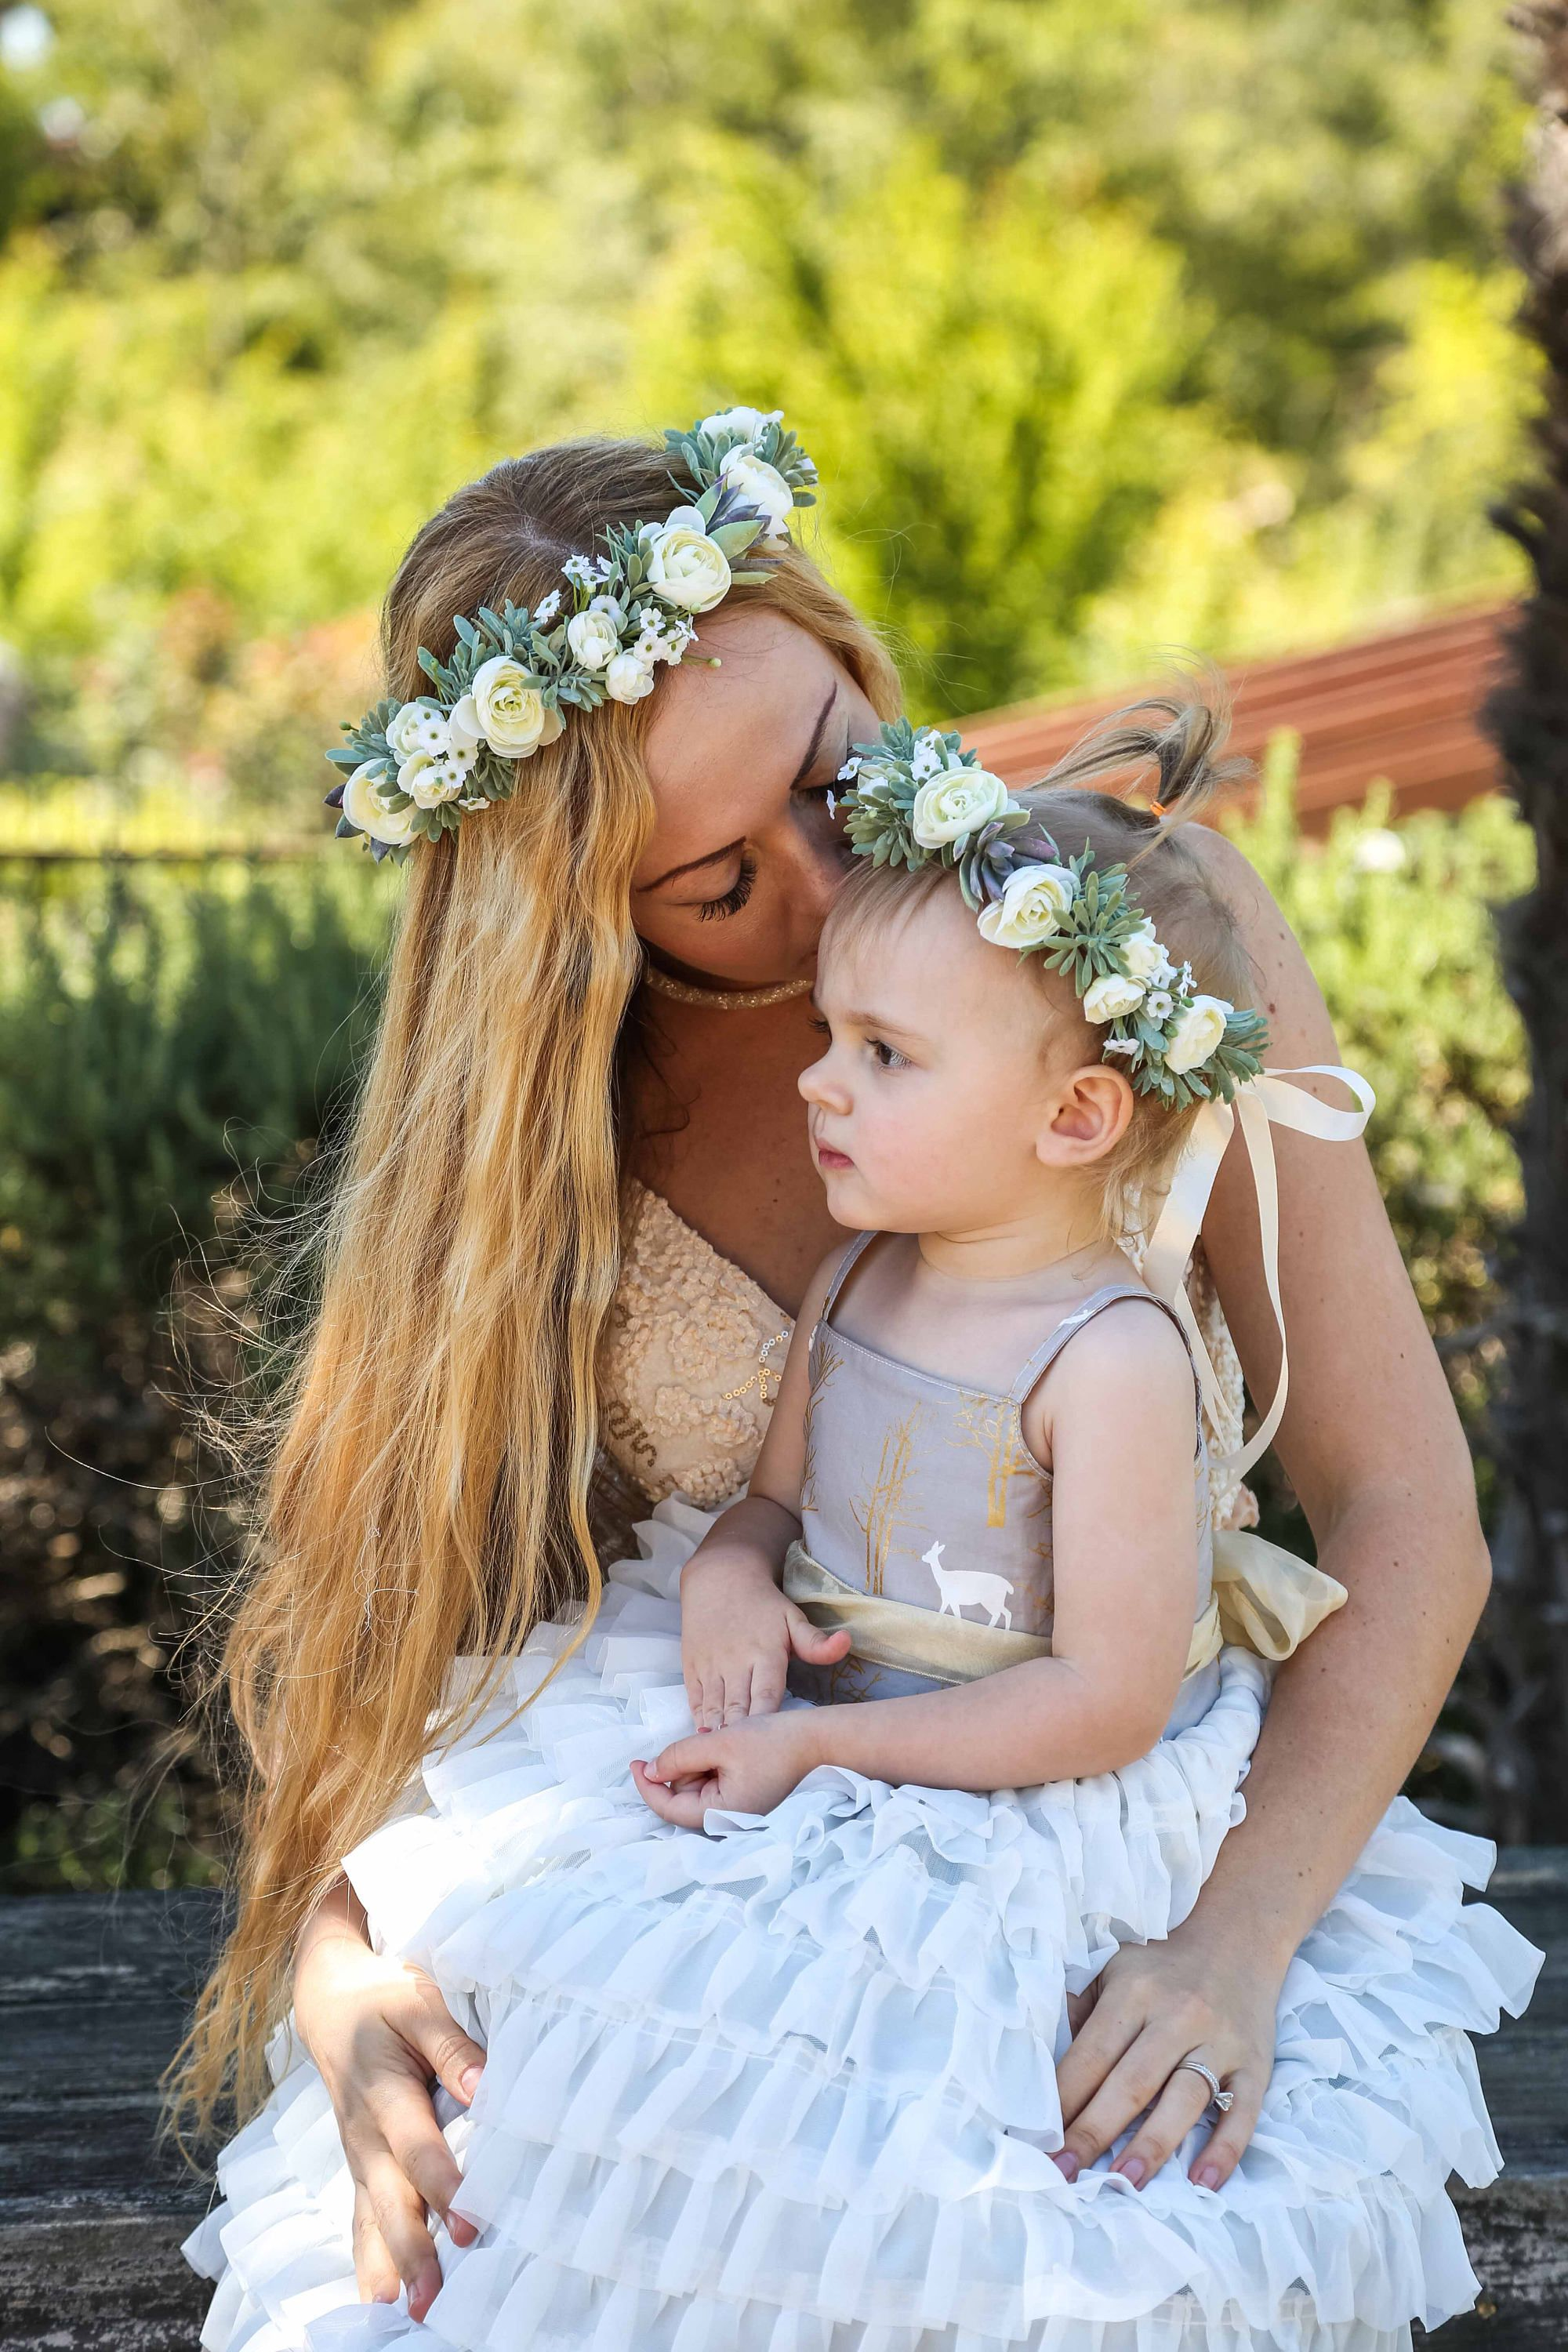 Mommy And Me Succulent White Flower Crown Set Bohemian Etsy White Flower Crown Bohemian Headpiece Flower Crown Wedding